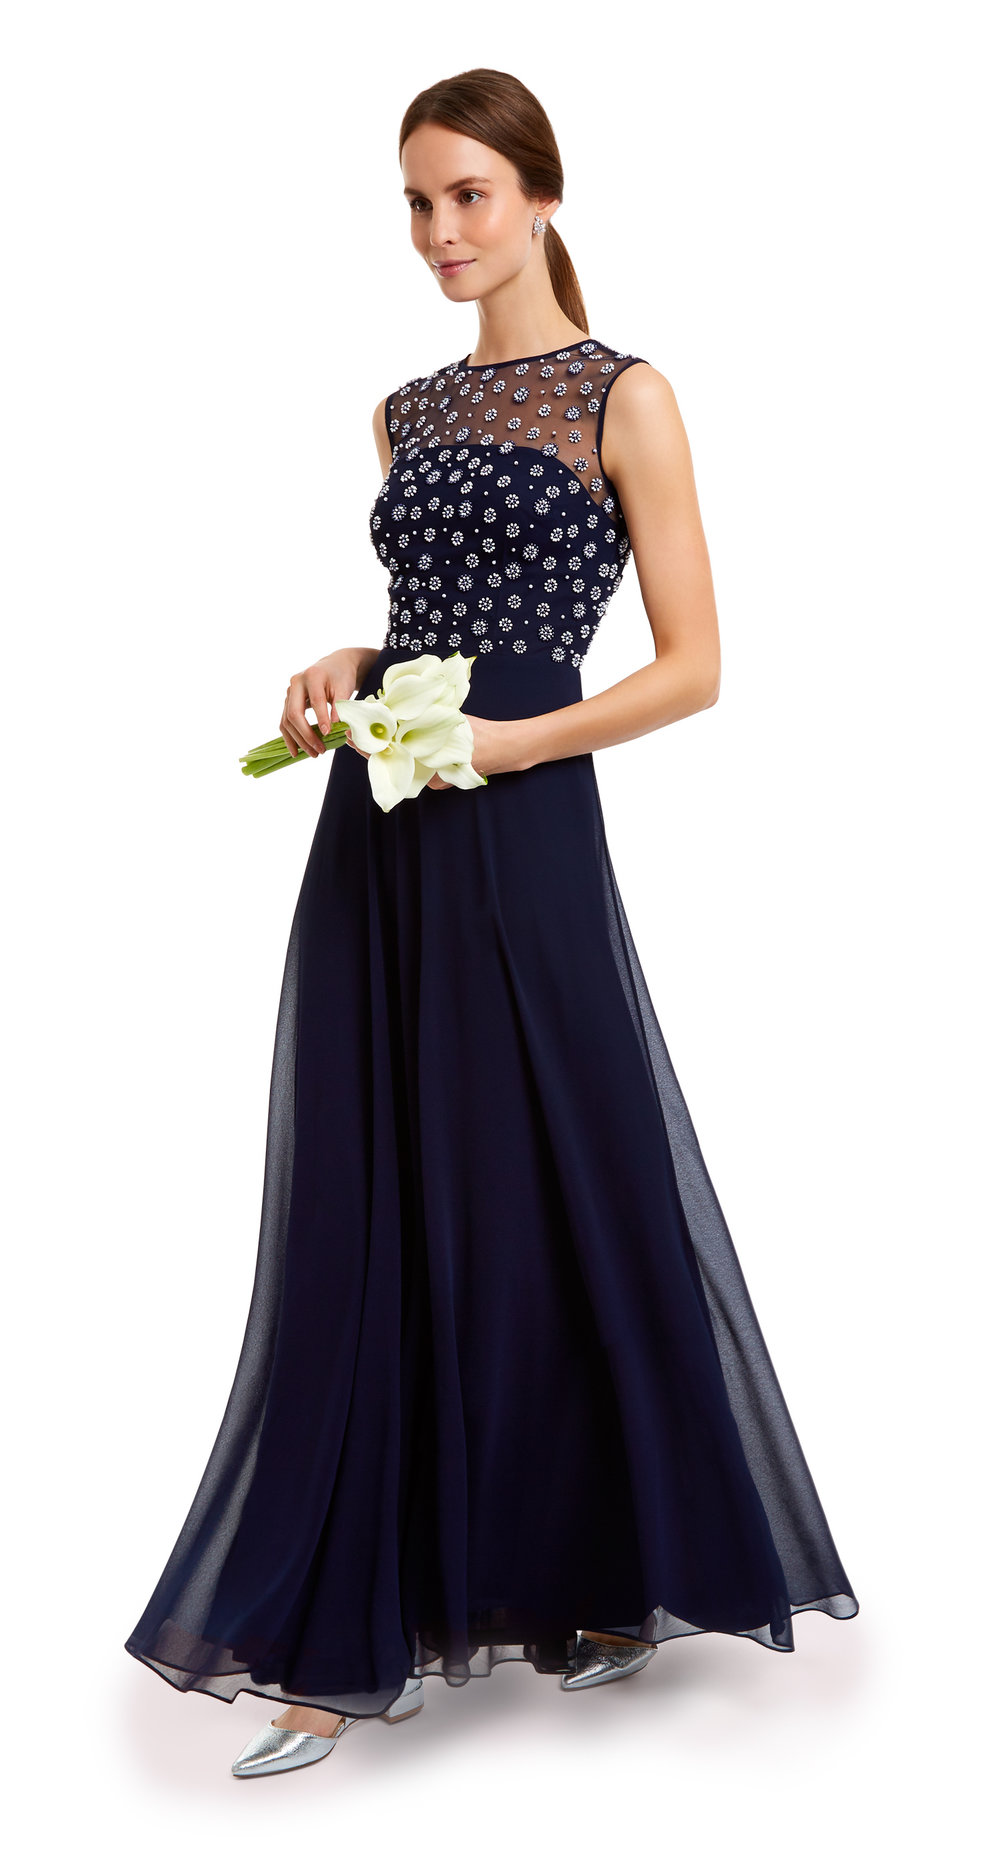 motee-navy-bridesmaid-dress.jpg